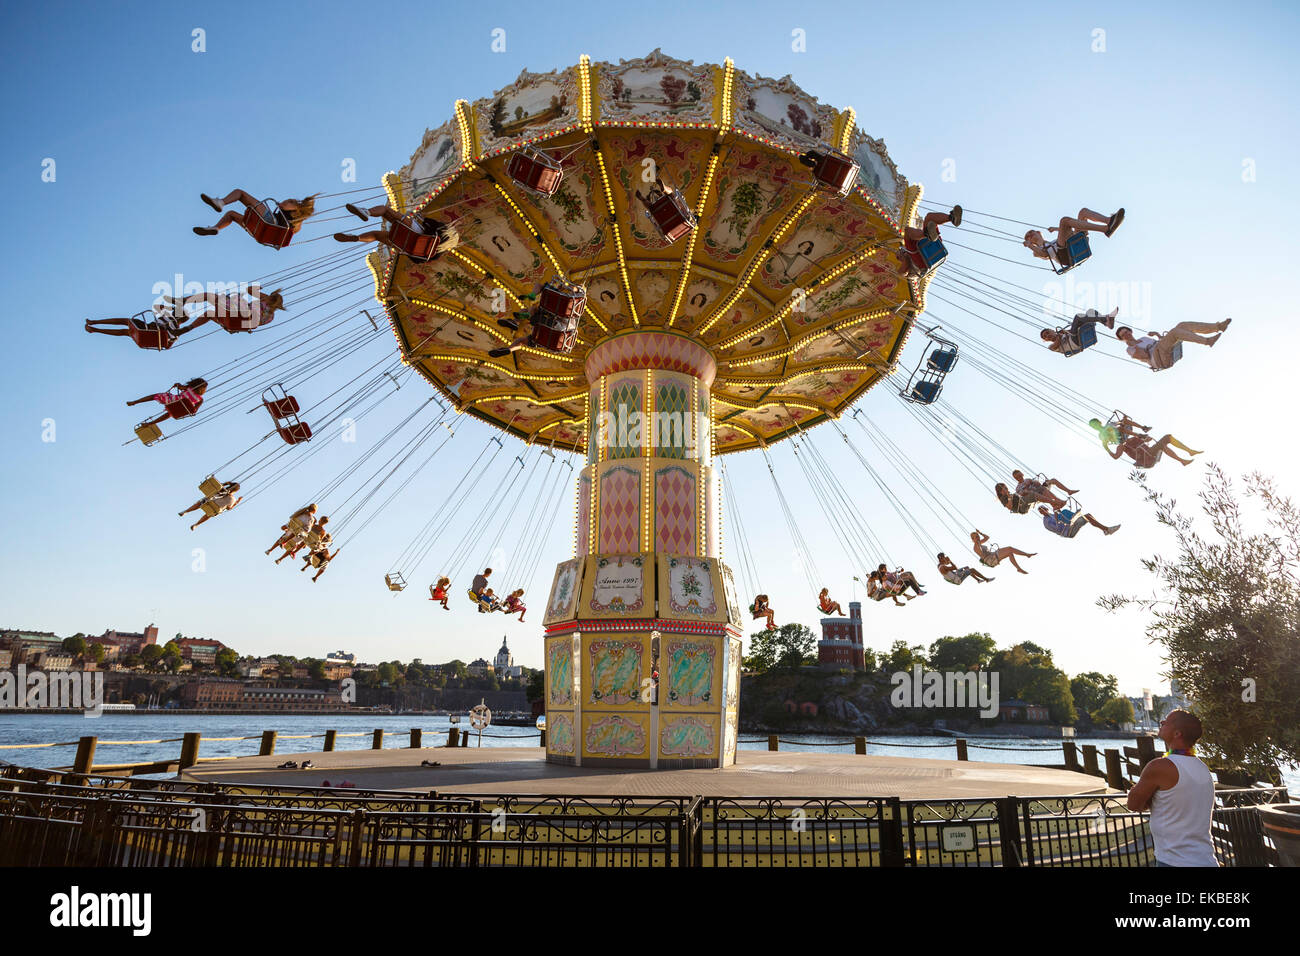 Grona Lund amusement park, Djurgarden, Stockholm, Sweden, Scandinavia, Europe - Stock Image